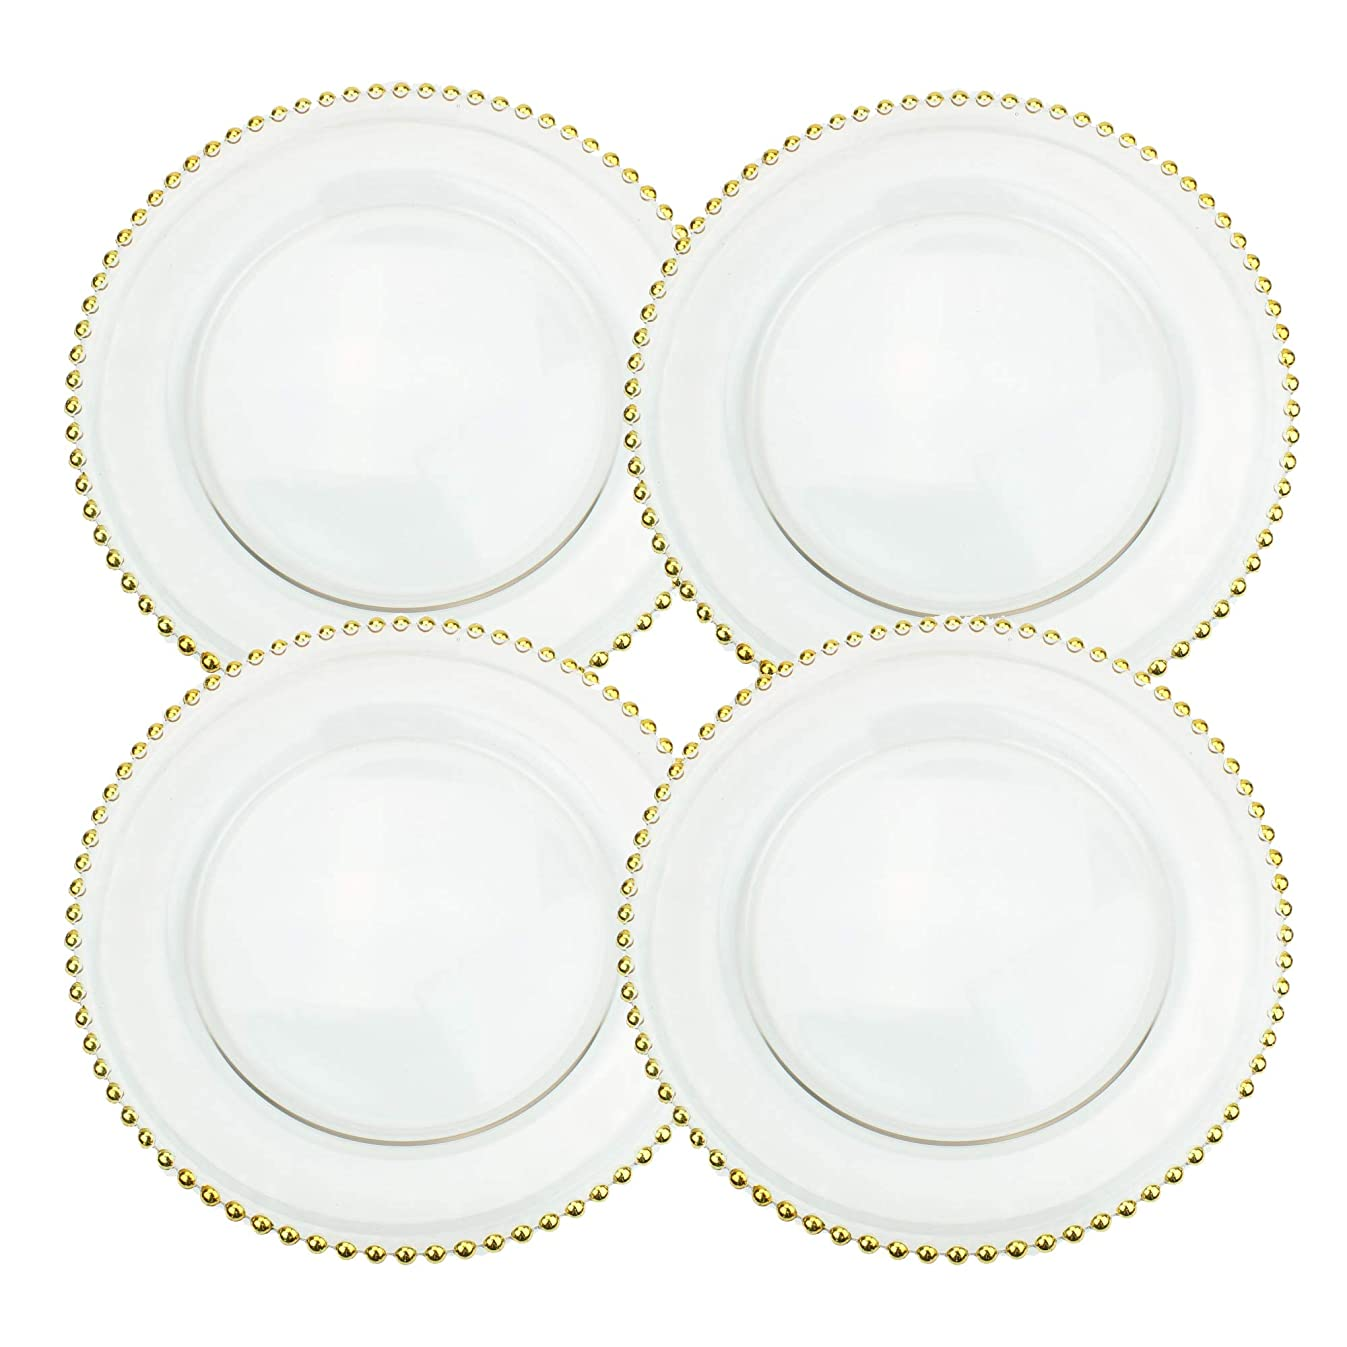 Ms Lovely Clear Glass Charger 12.6 Inch Dinner Plate with Beaded Rim - Set of 4 - Gold